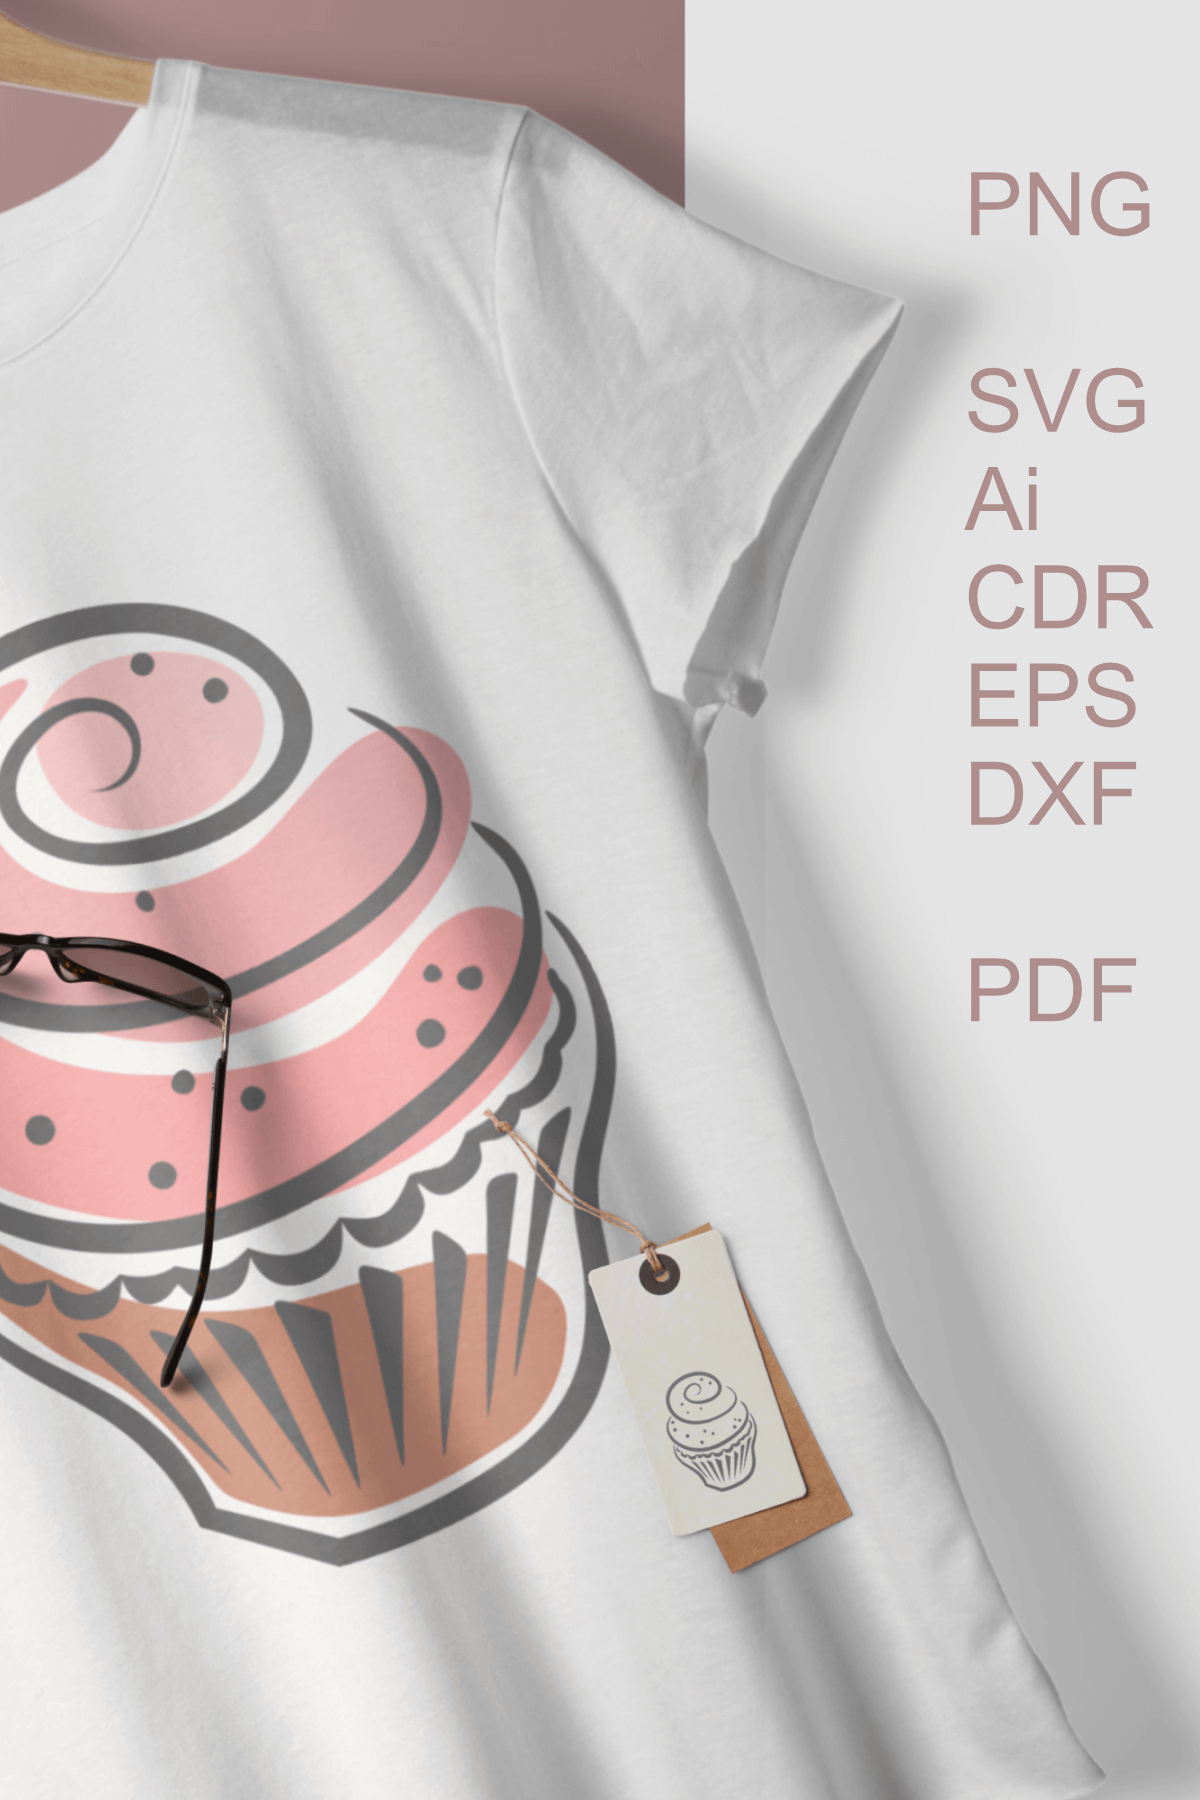 Cupcakes Clipart SVG PDF AI DXF for Crafts and Stationery example image 4